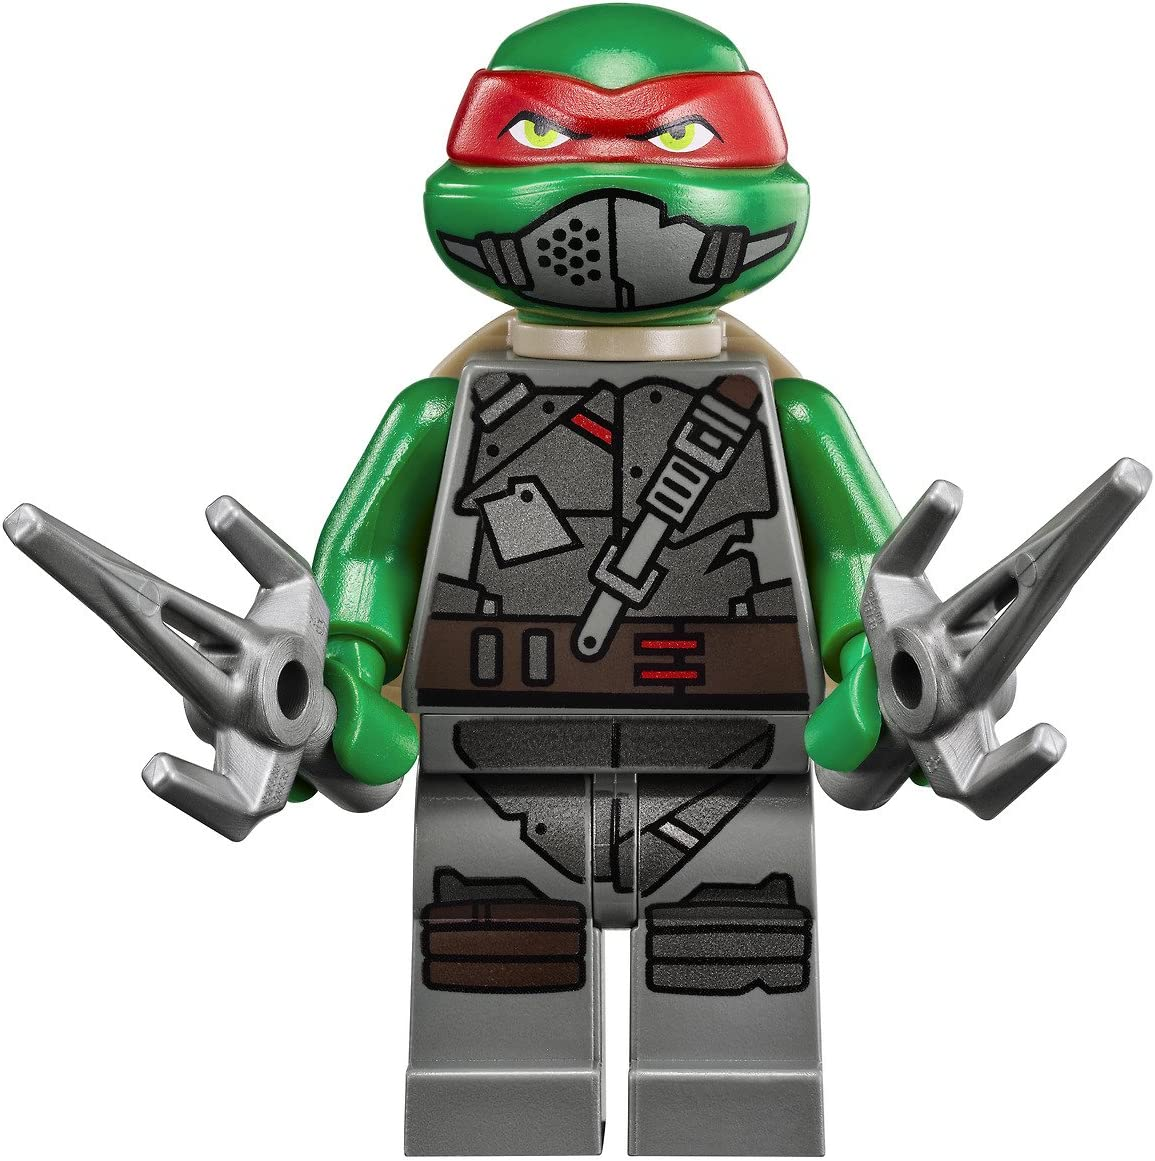 Amazon.com: LEGO Teenage Mutant Ninja Turtles Armored ...